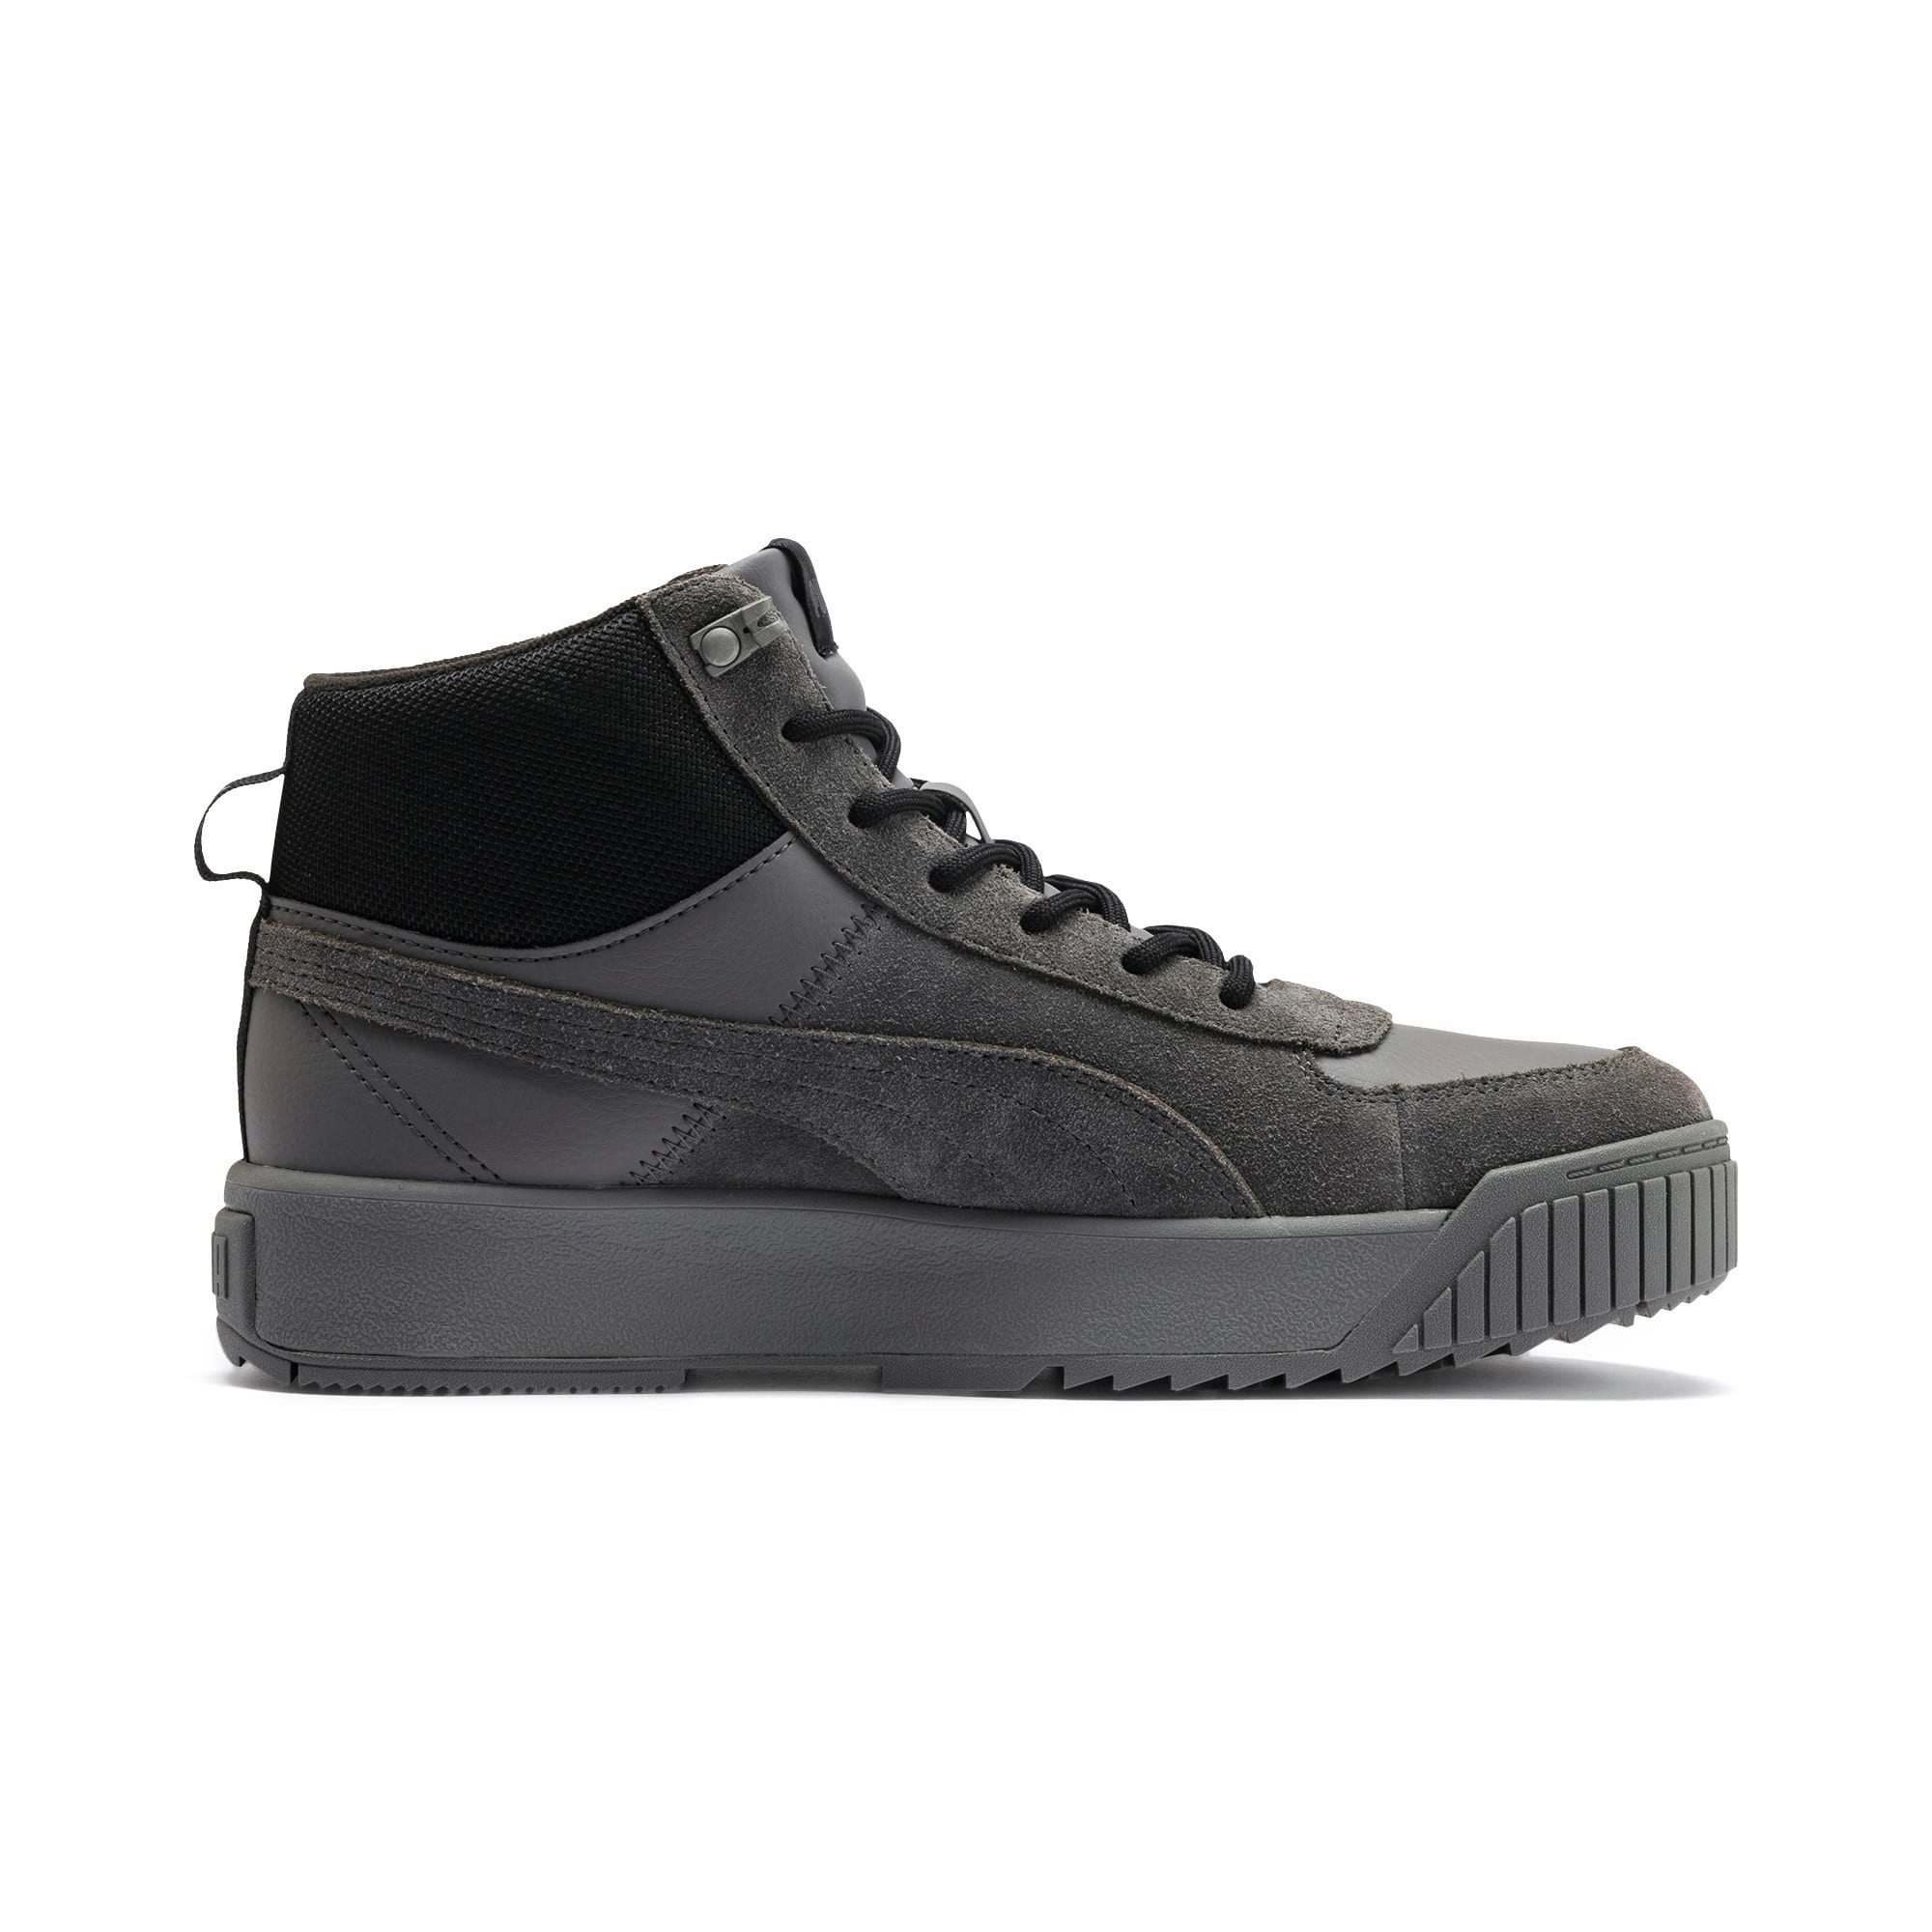 Thumbnail 6 of Tarrenz Sneaker Boots, CASTLEROCK-Puma Black, medium